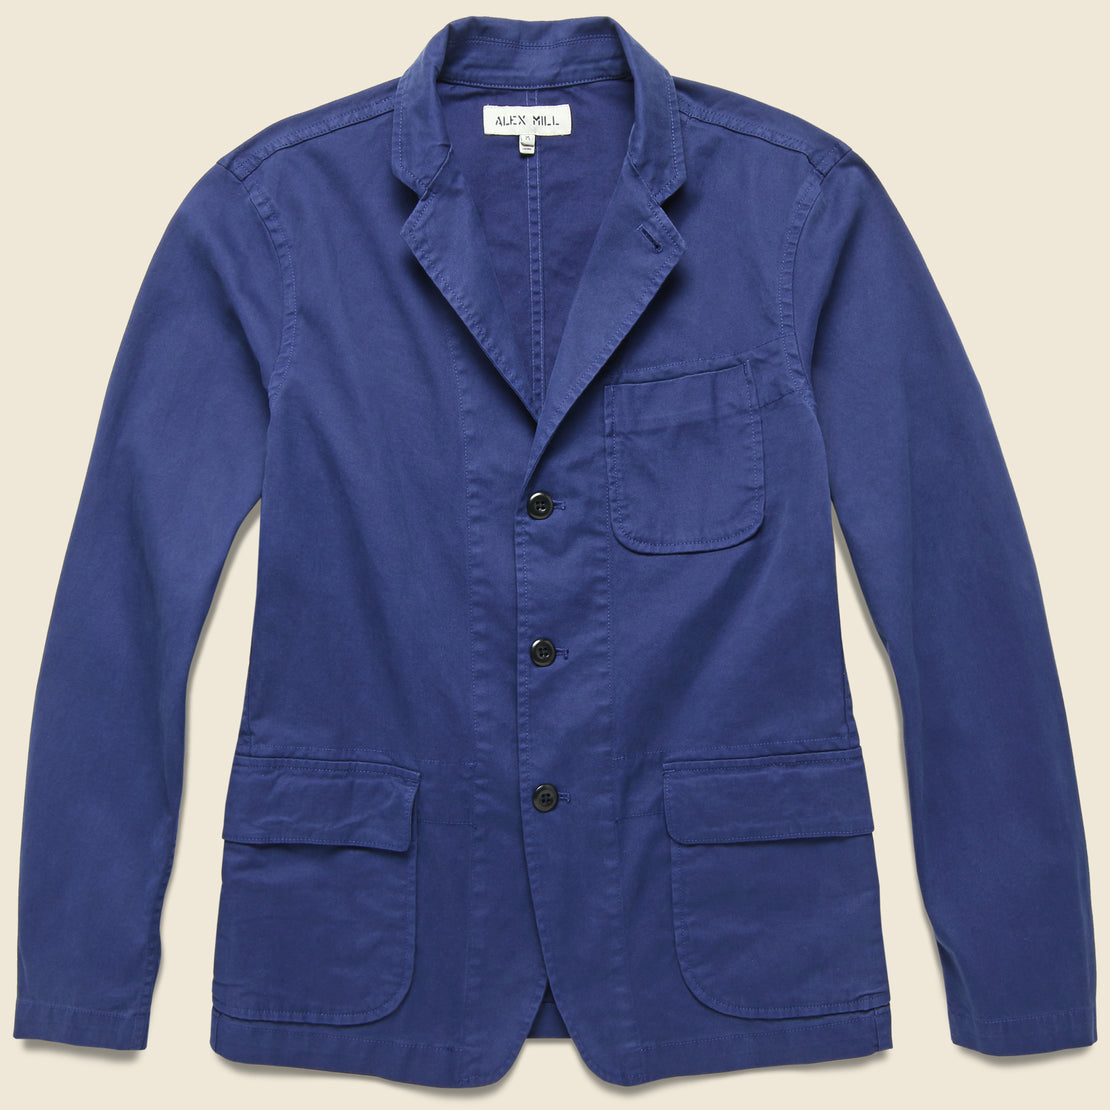 Alex Mill Twill Sack Jacket - Navy